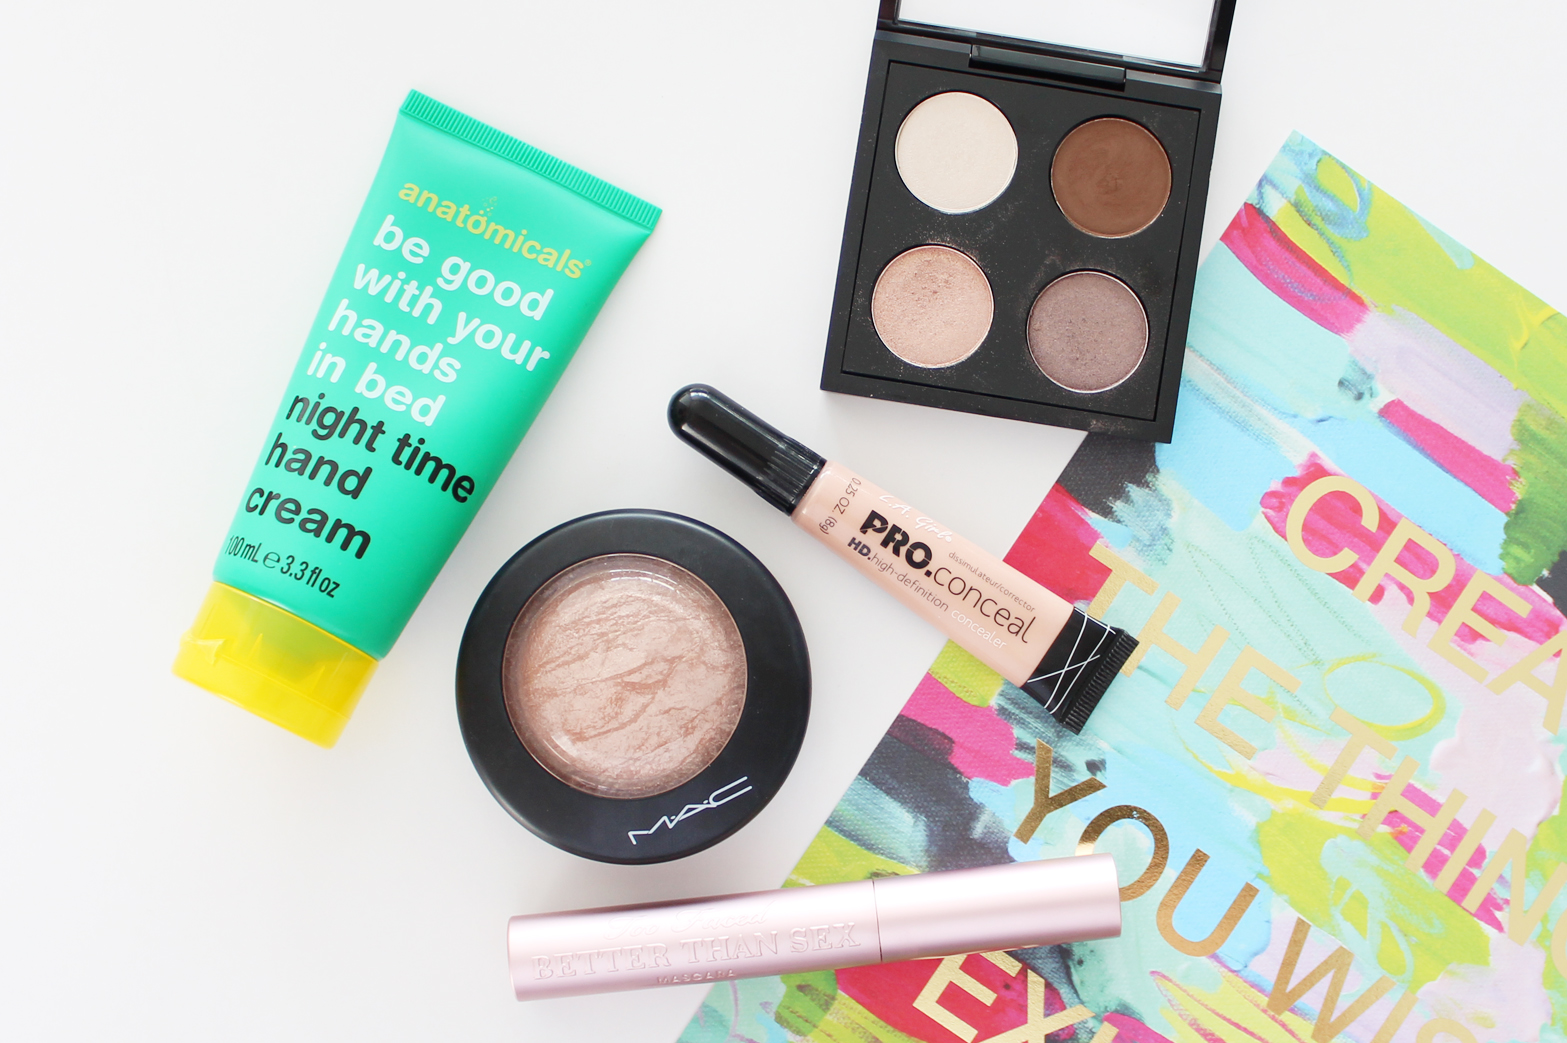 MOST LOVED | February '15 - anatomicals, MAC, Too Faced, L.A. Girl - CassandraMye